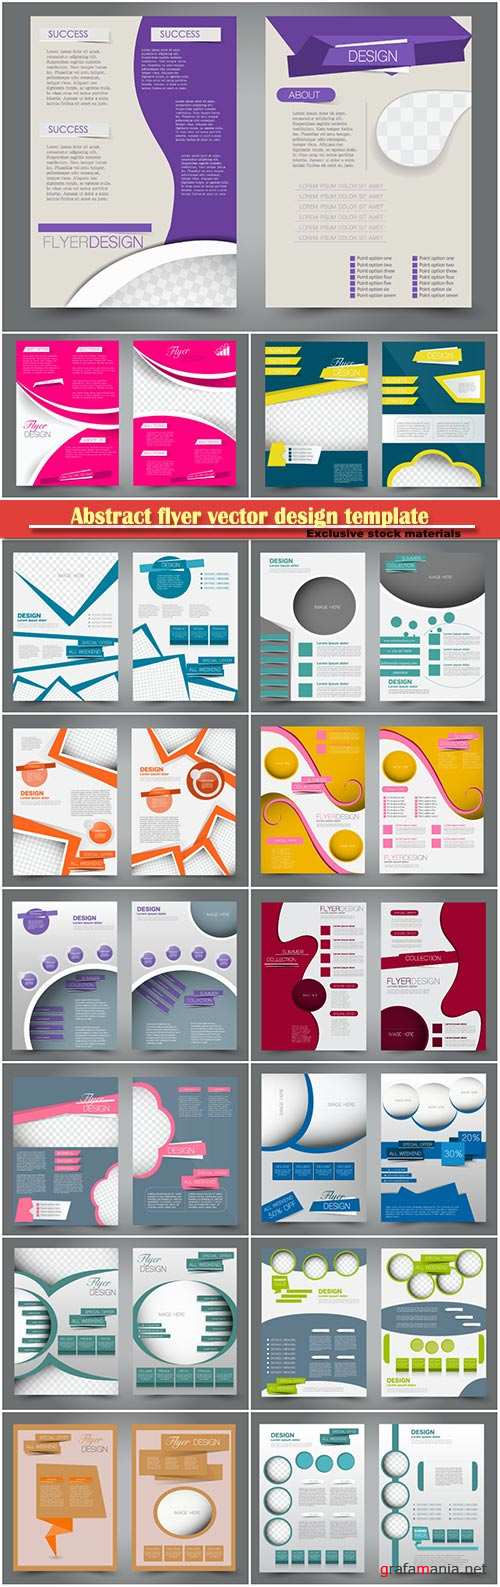 Abstract flyer vector design template, business brochure